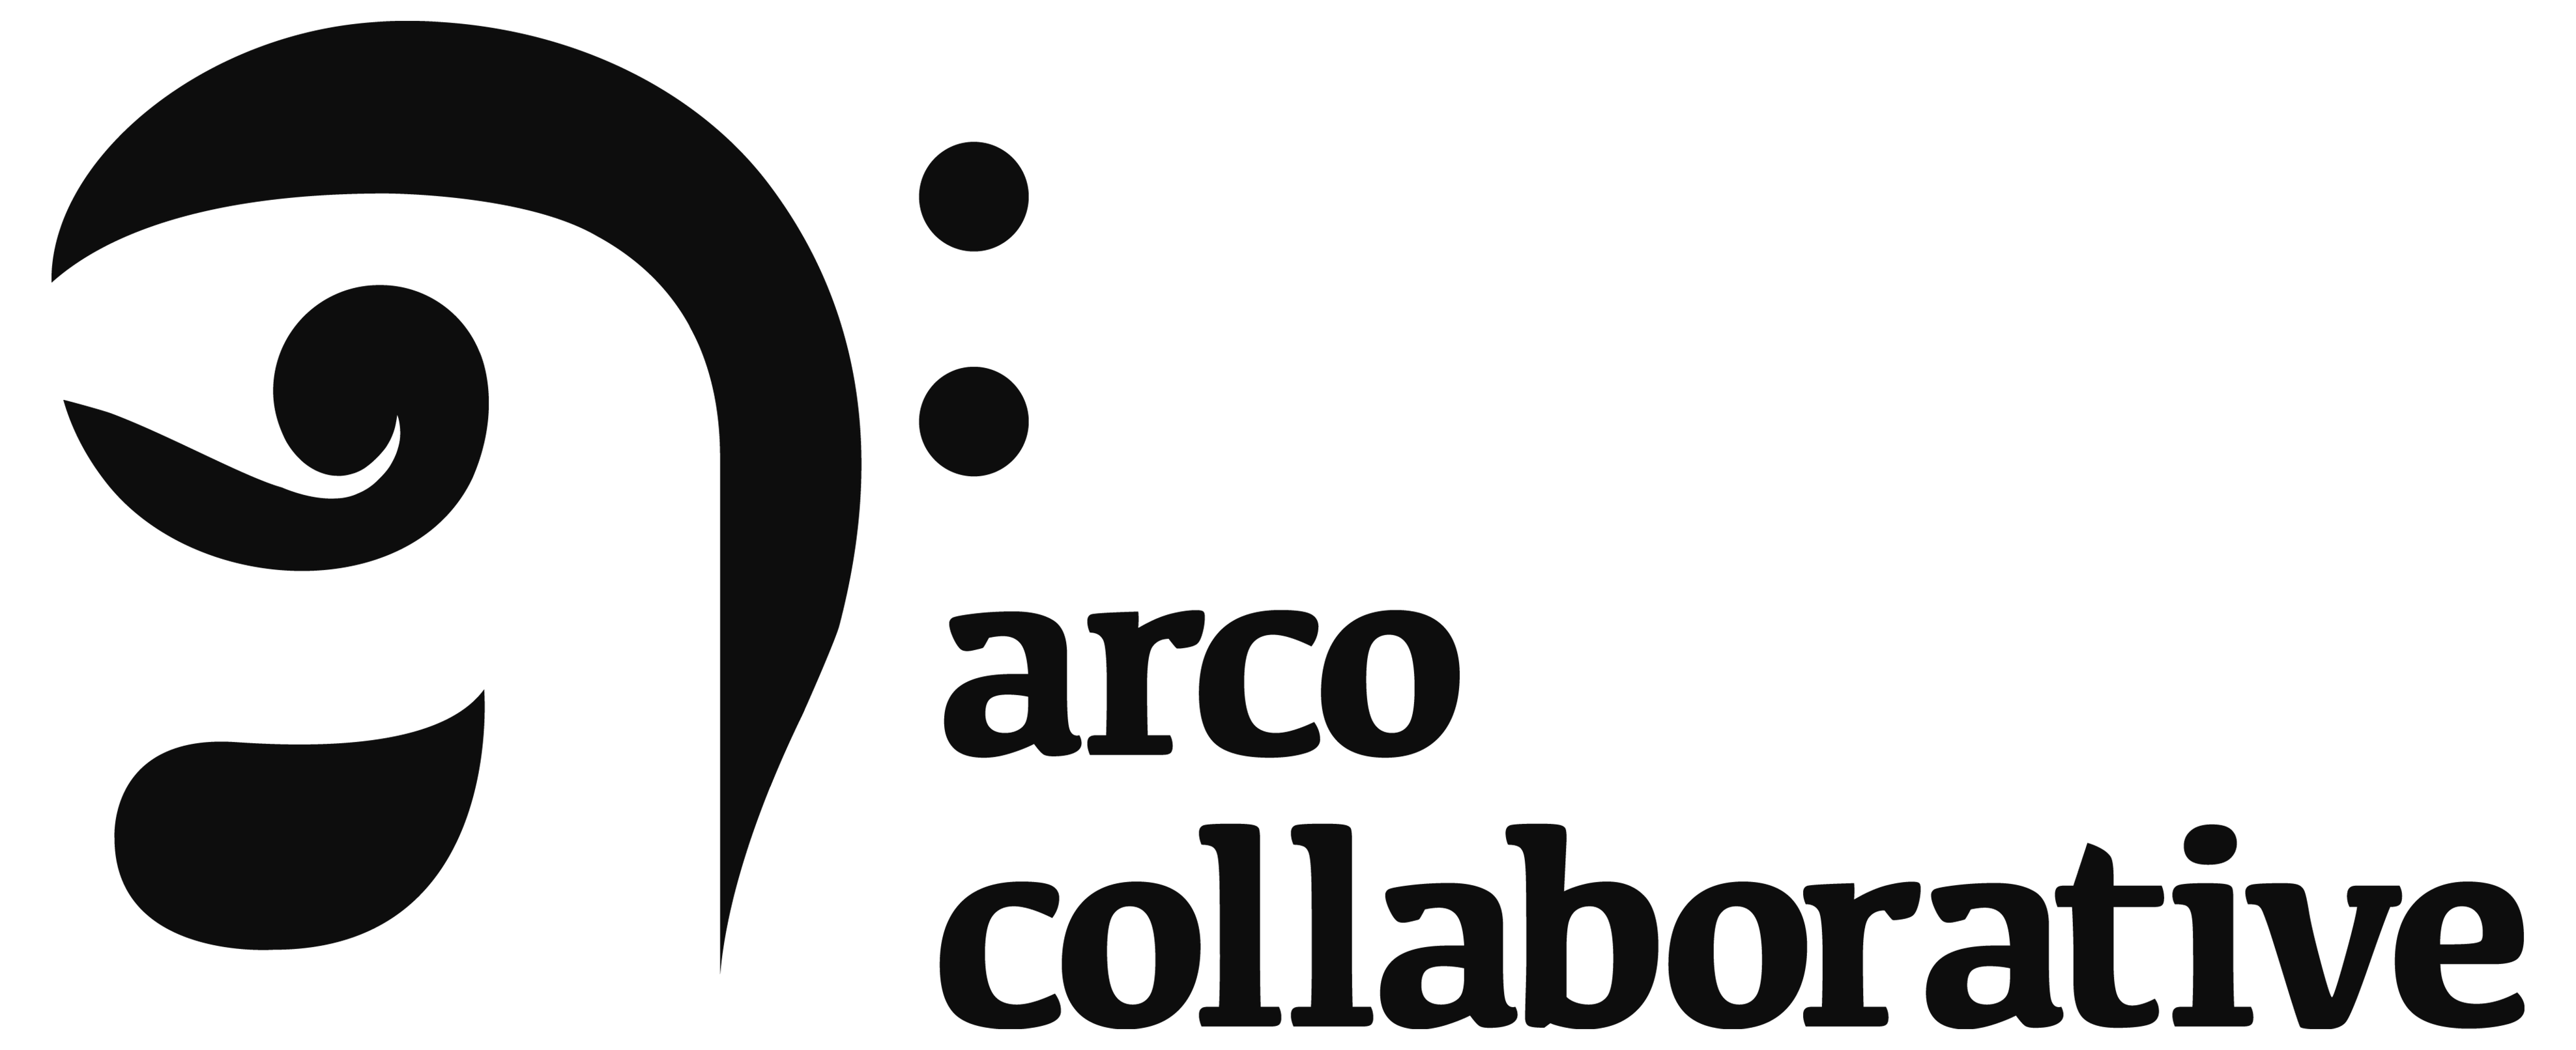 arco collaborative